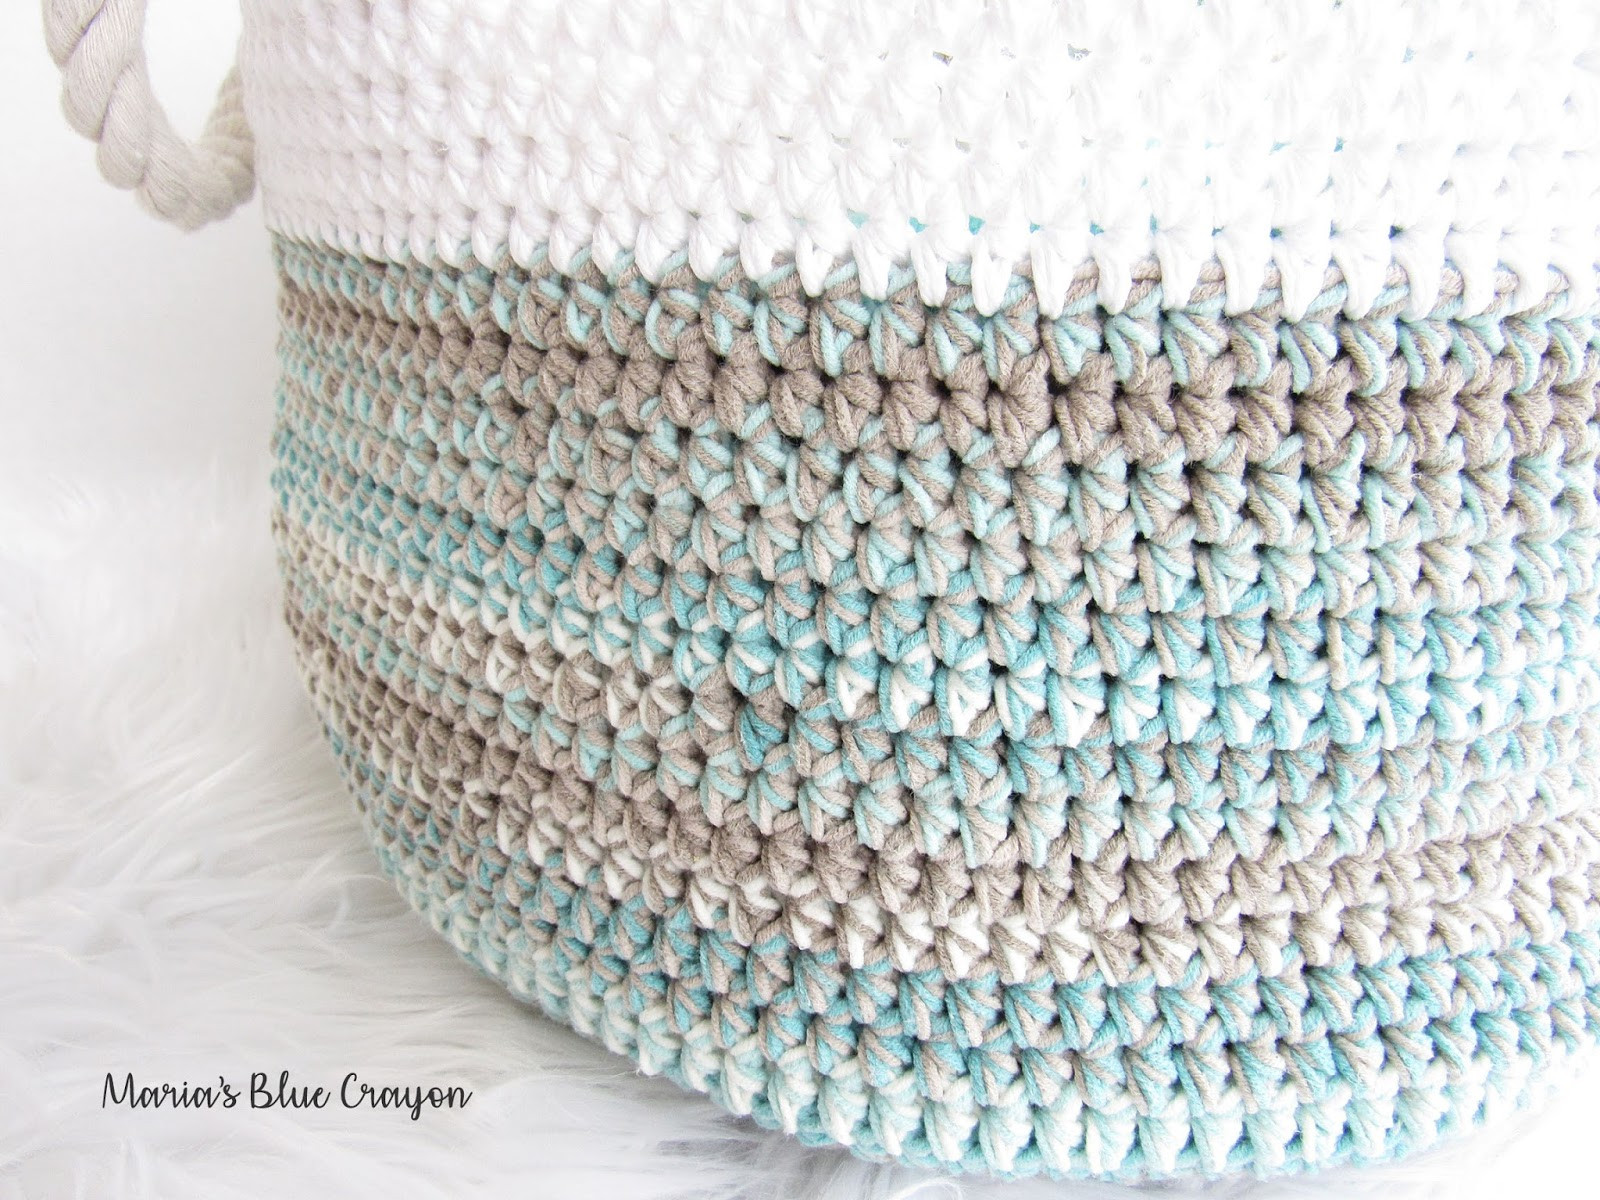 Elegant Caron Cotton Cakes Basket Free Crochet Pattern Maria S Caron Cotton Cakes Yarn Of Amazing 48 Photos Caron Cotton Cakes Yarn